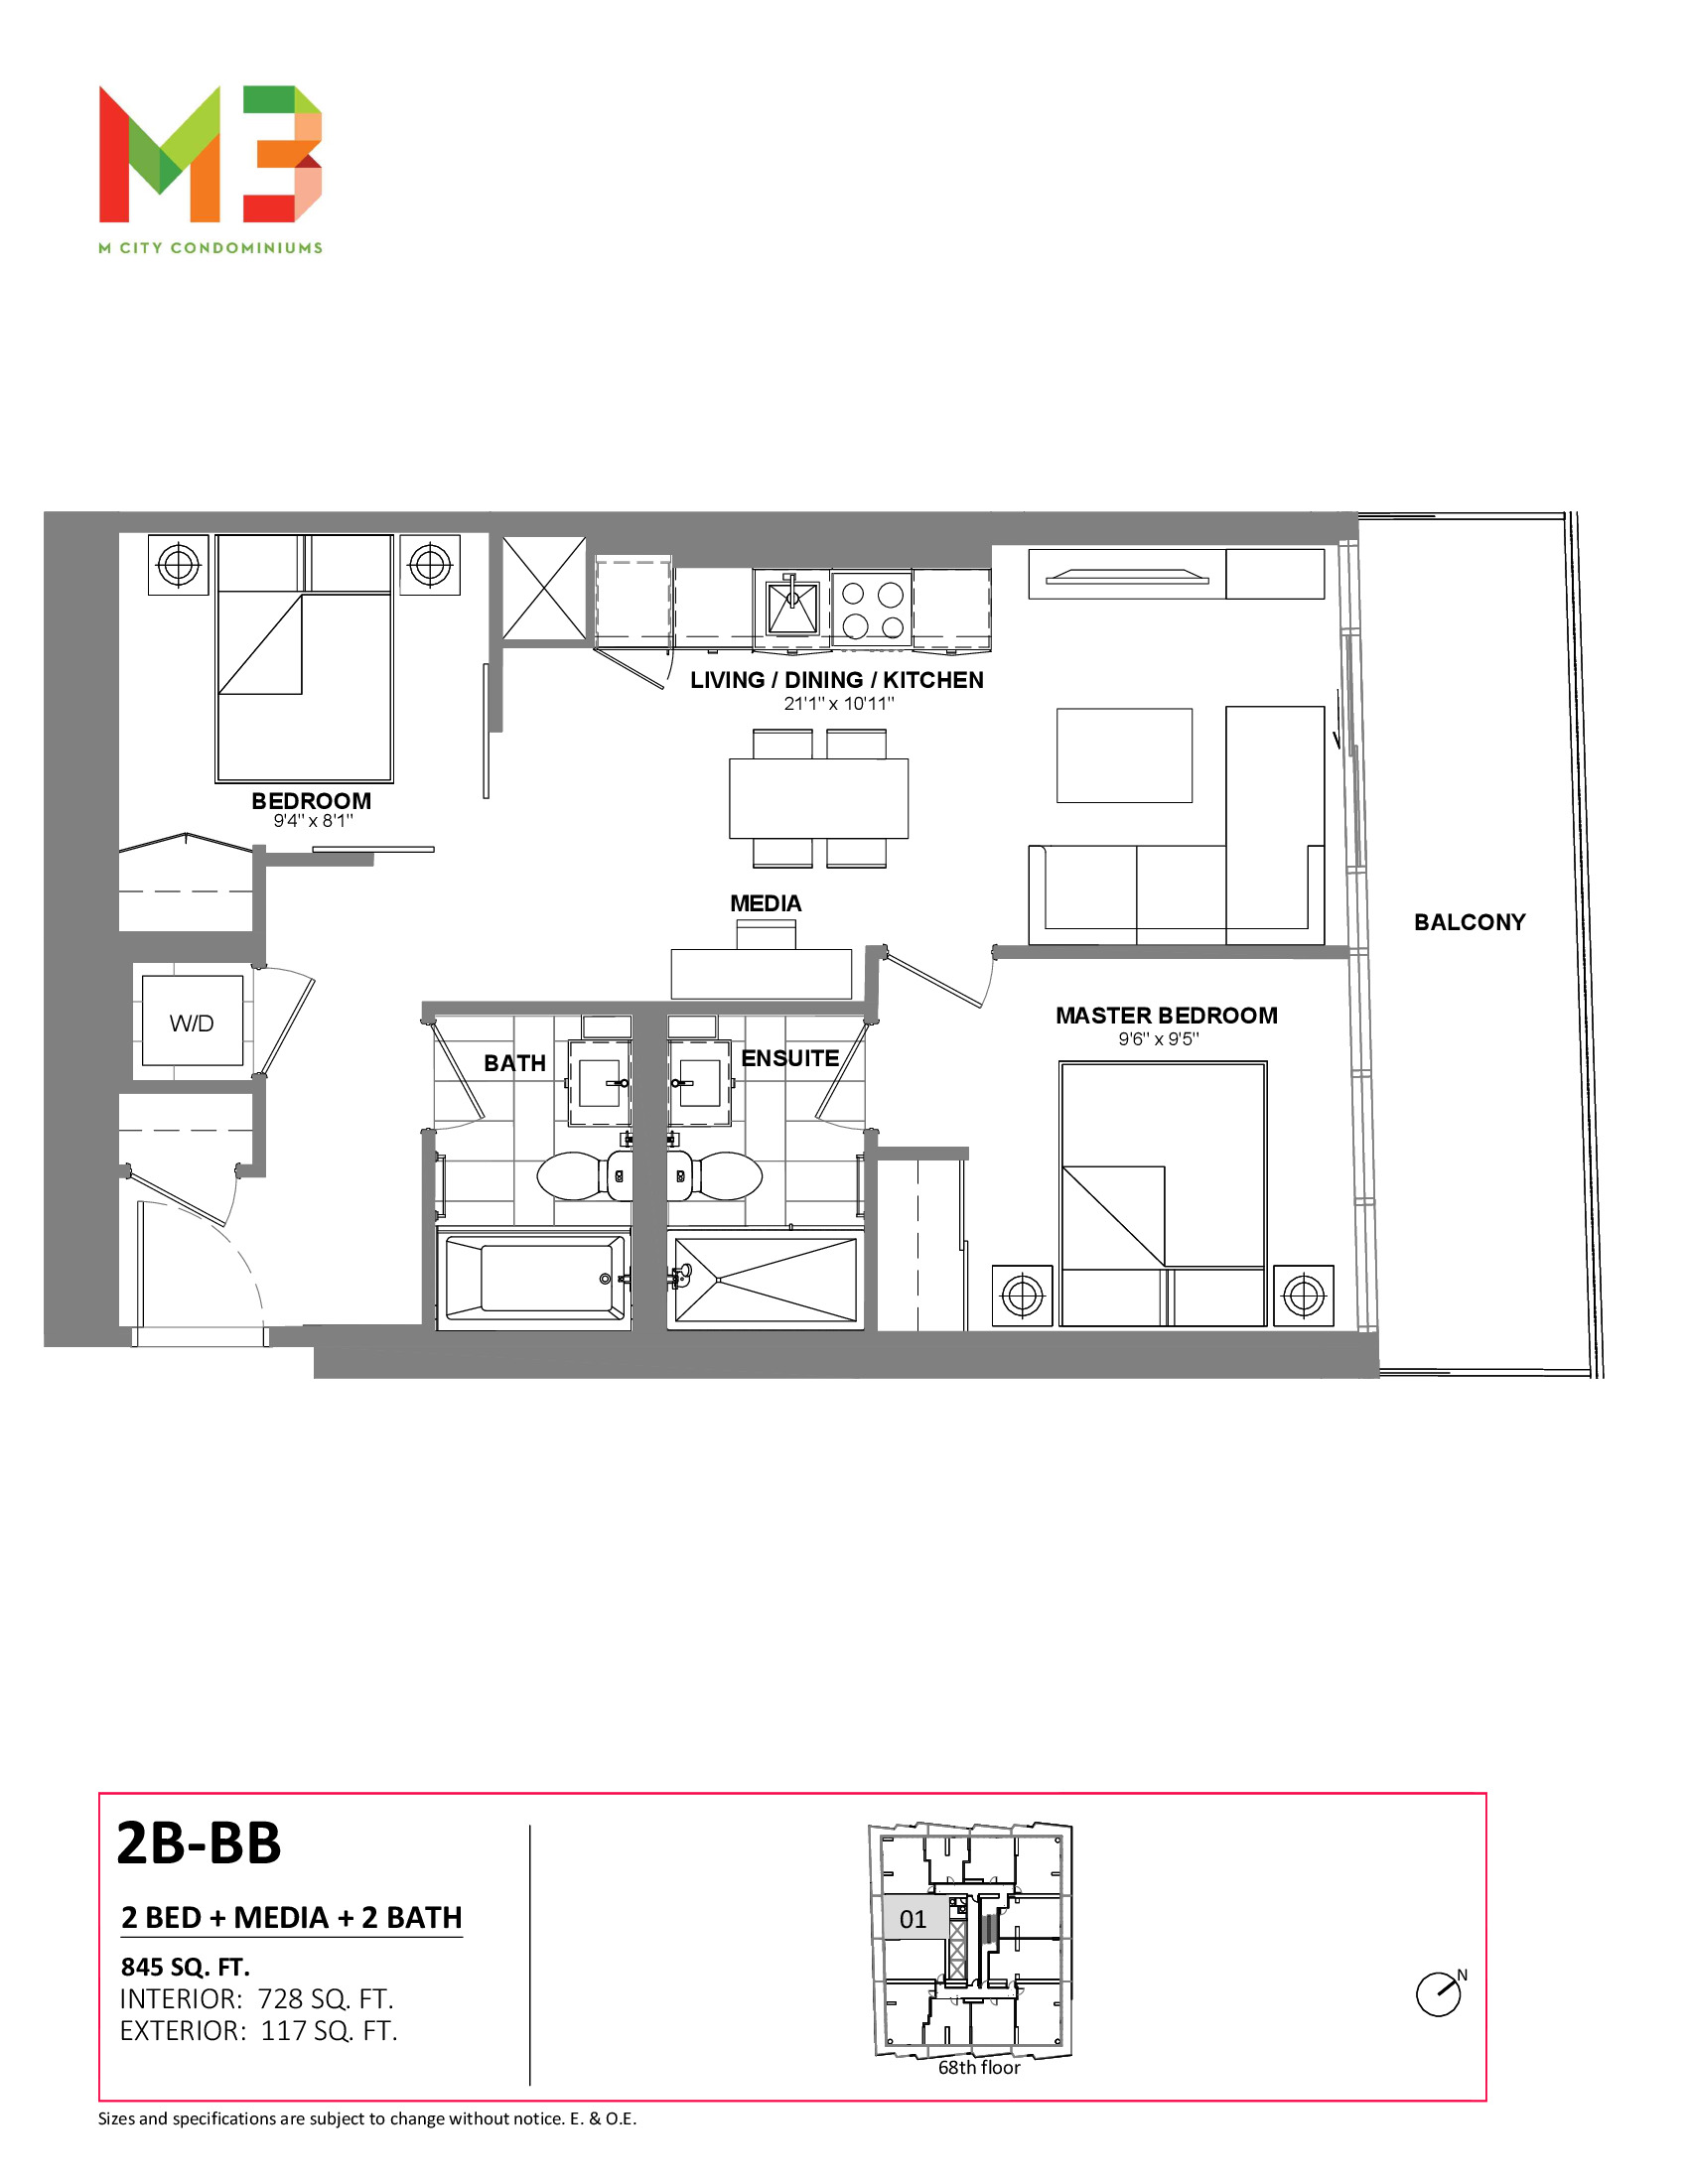 2B-BB Floor Plan at M3 Condos - 728 sq.ft